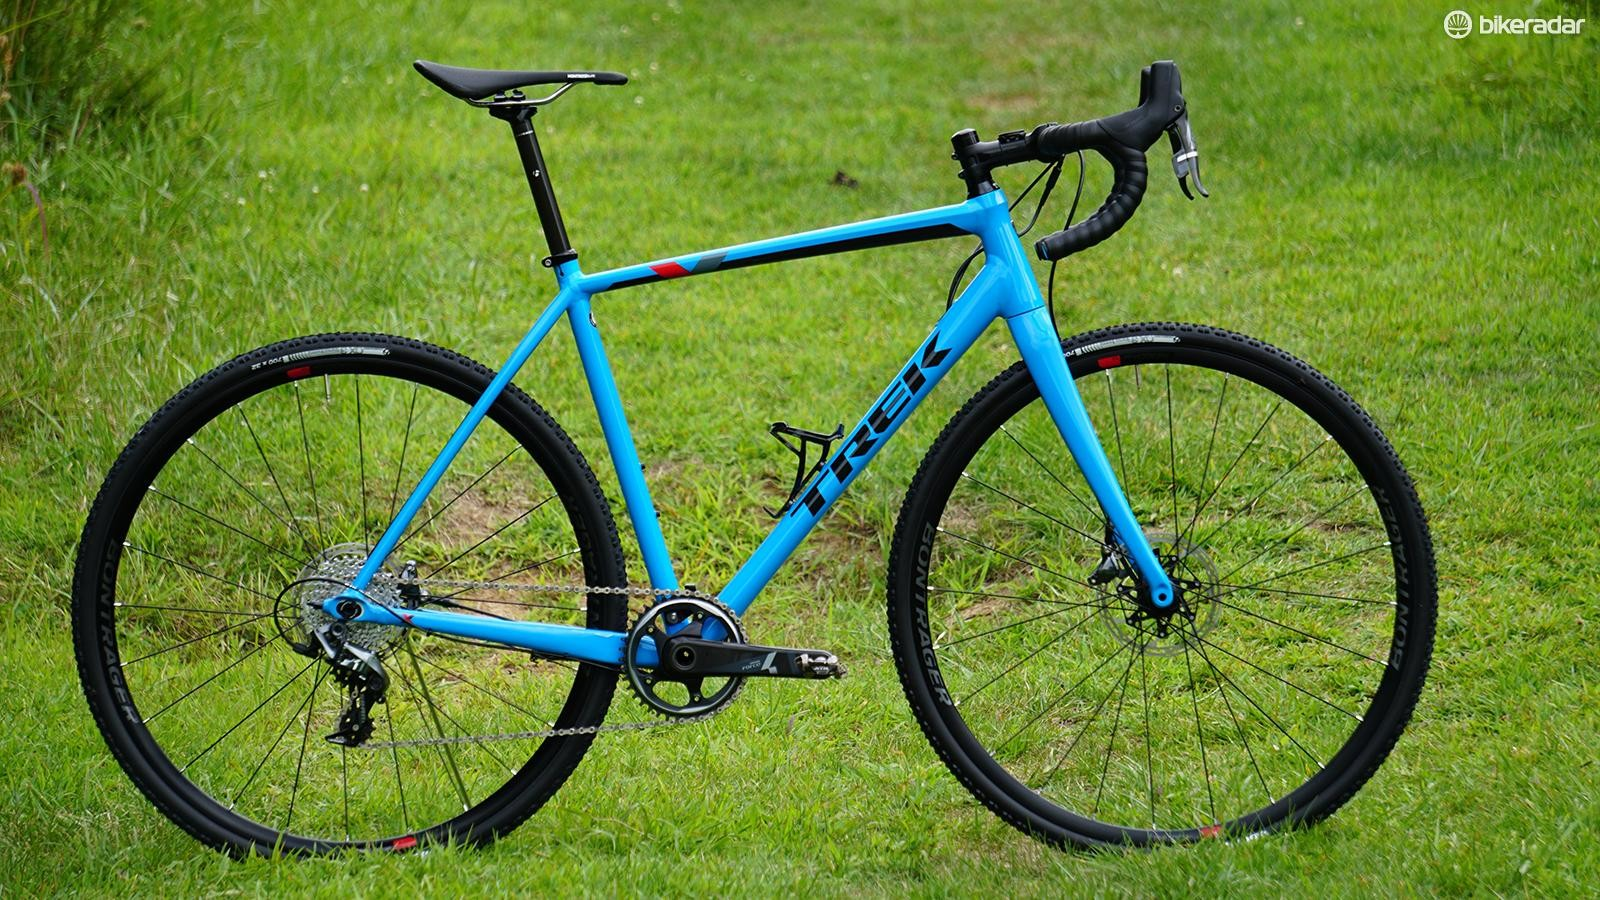 Trek Crockett 7 Disc cyclocross bike